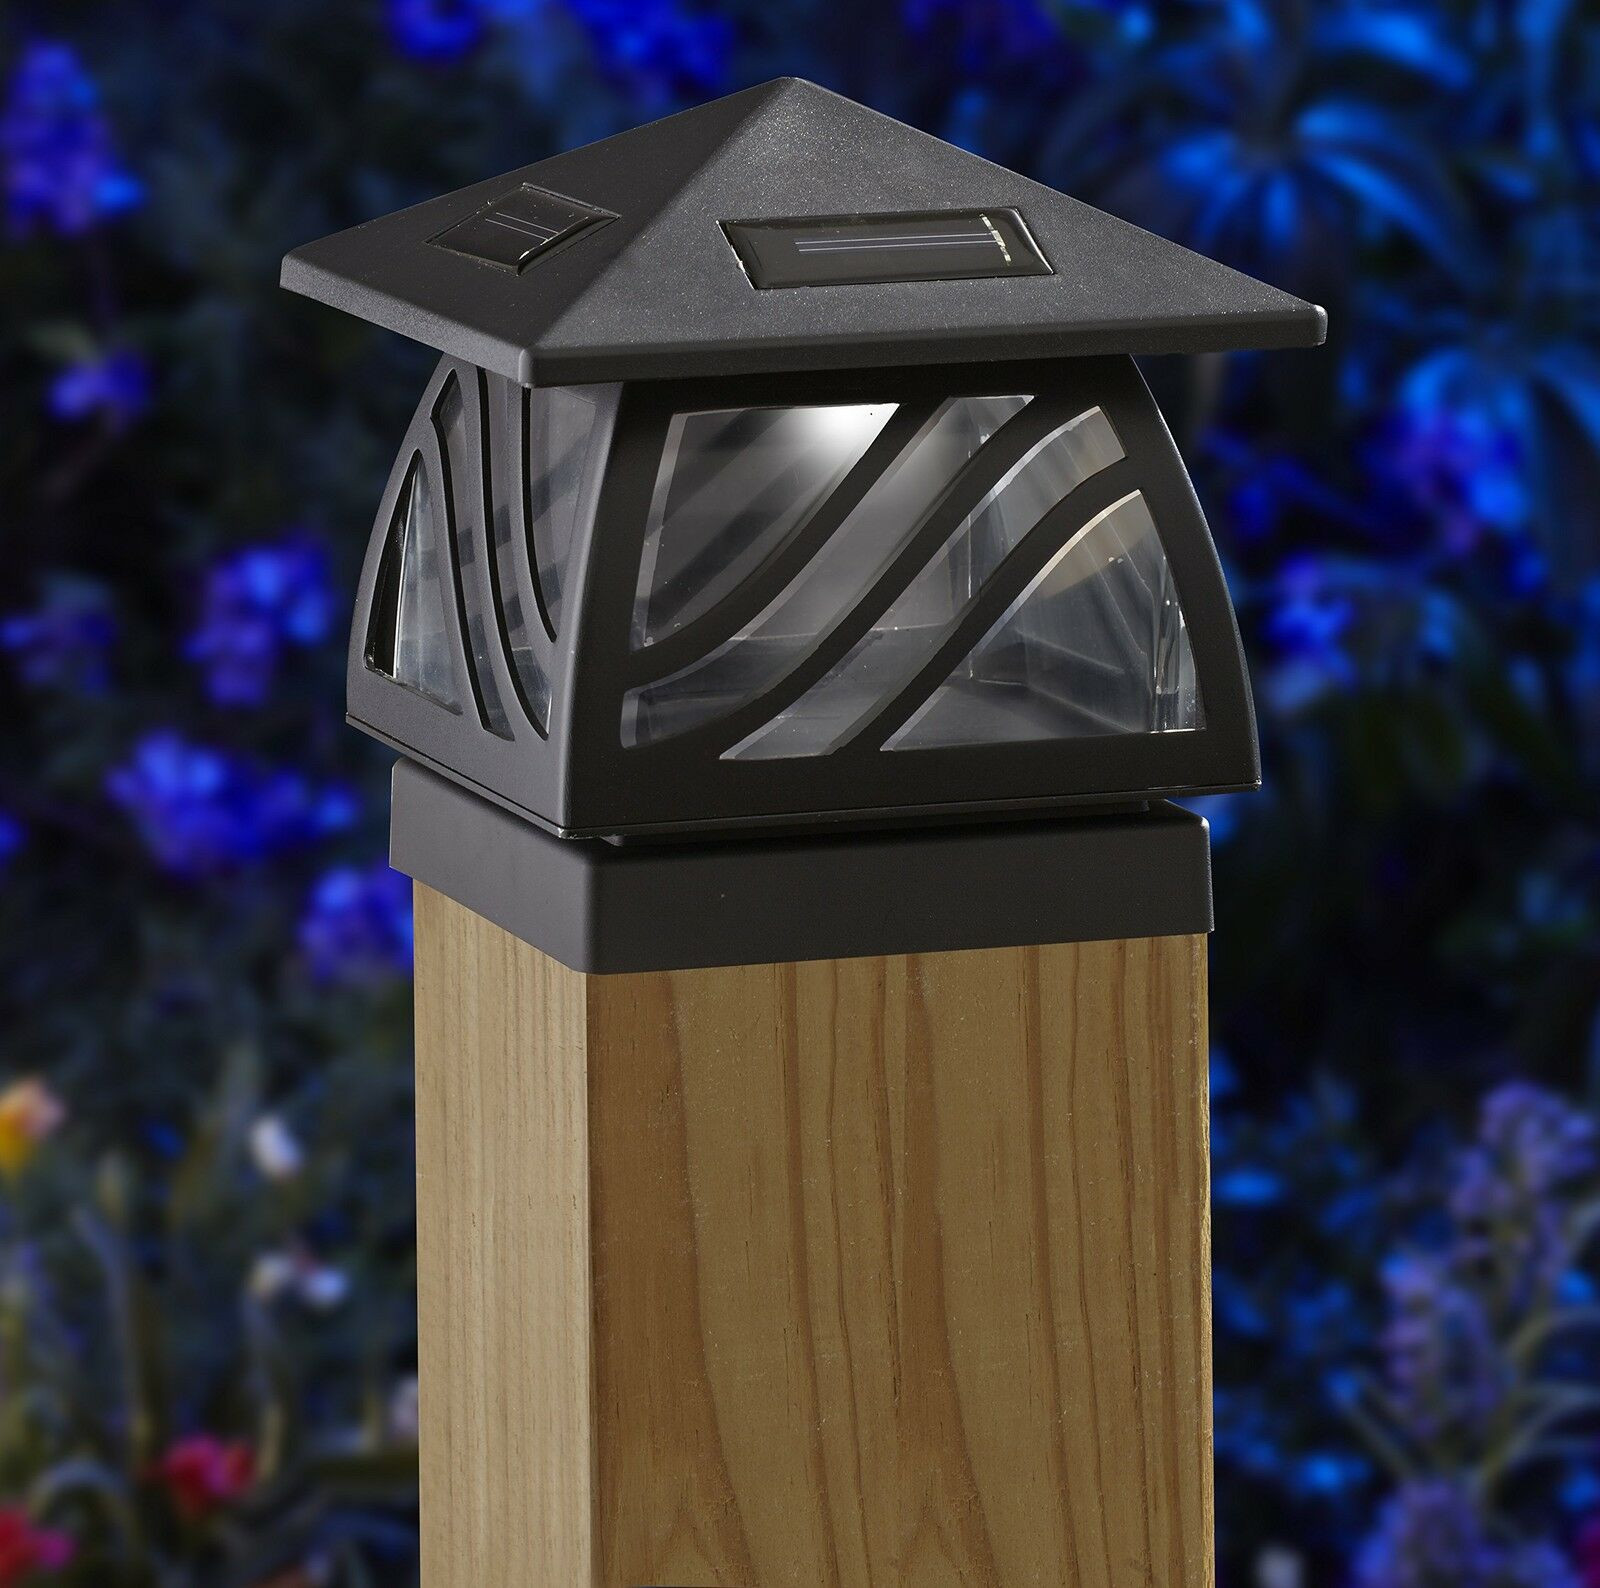 Best ideas about Fence Post Lights . Save or Pin Moonrays Solar LED Post Cap Outdoor Light for 4x4 Now.